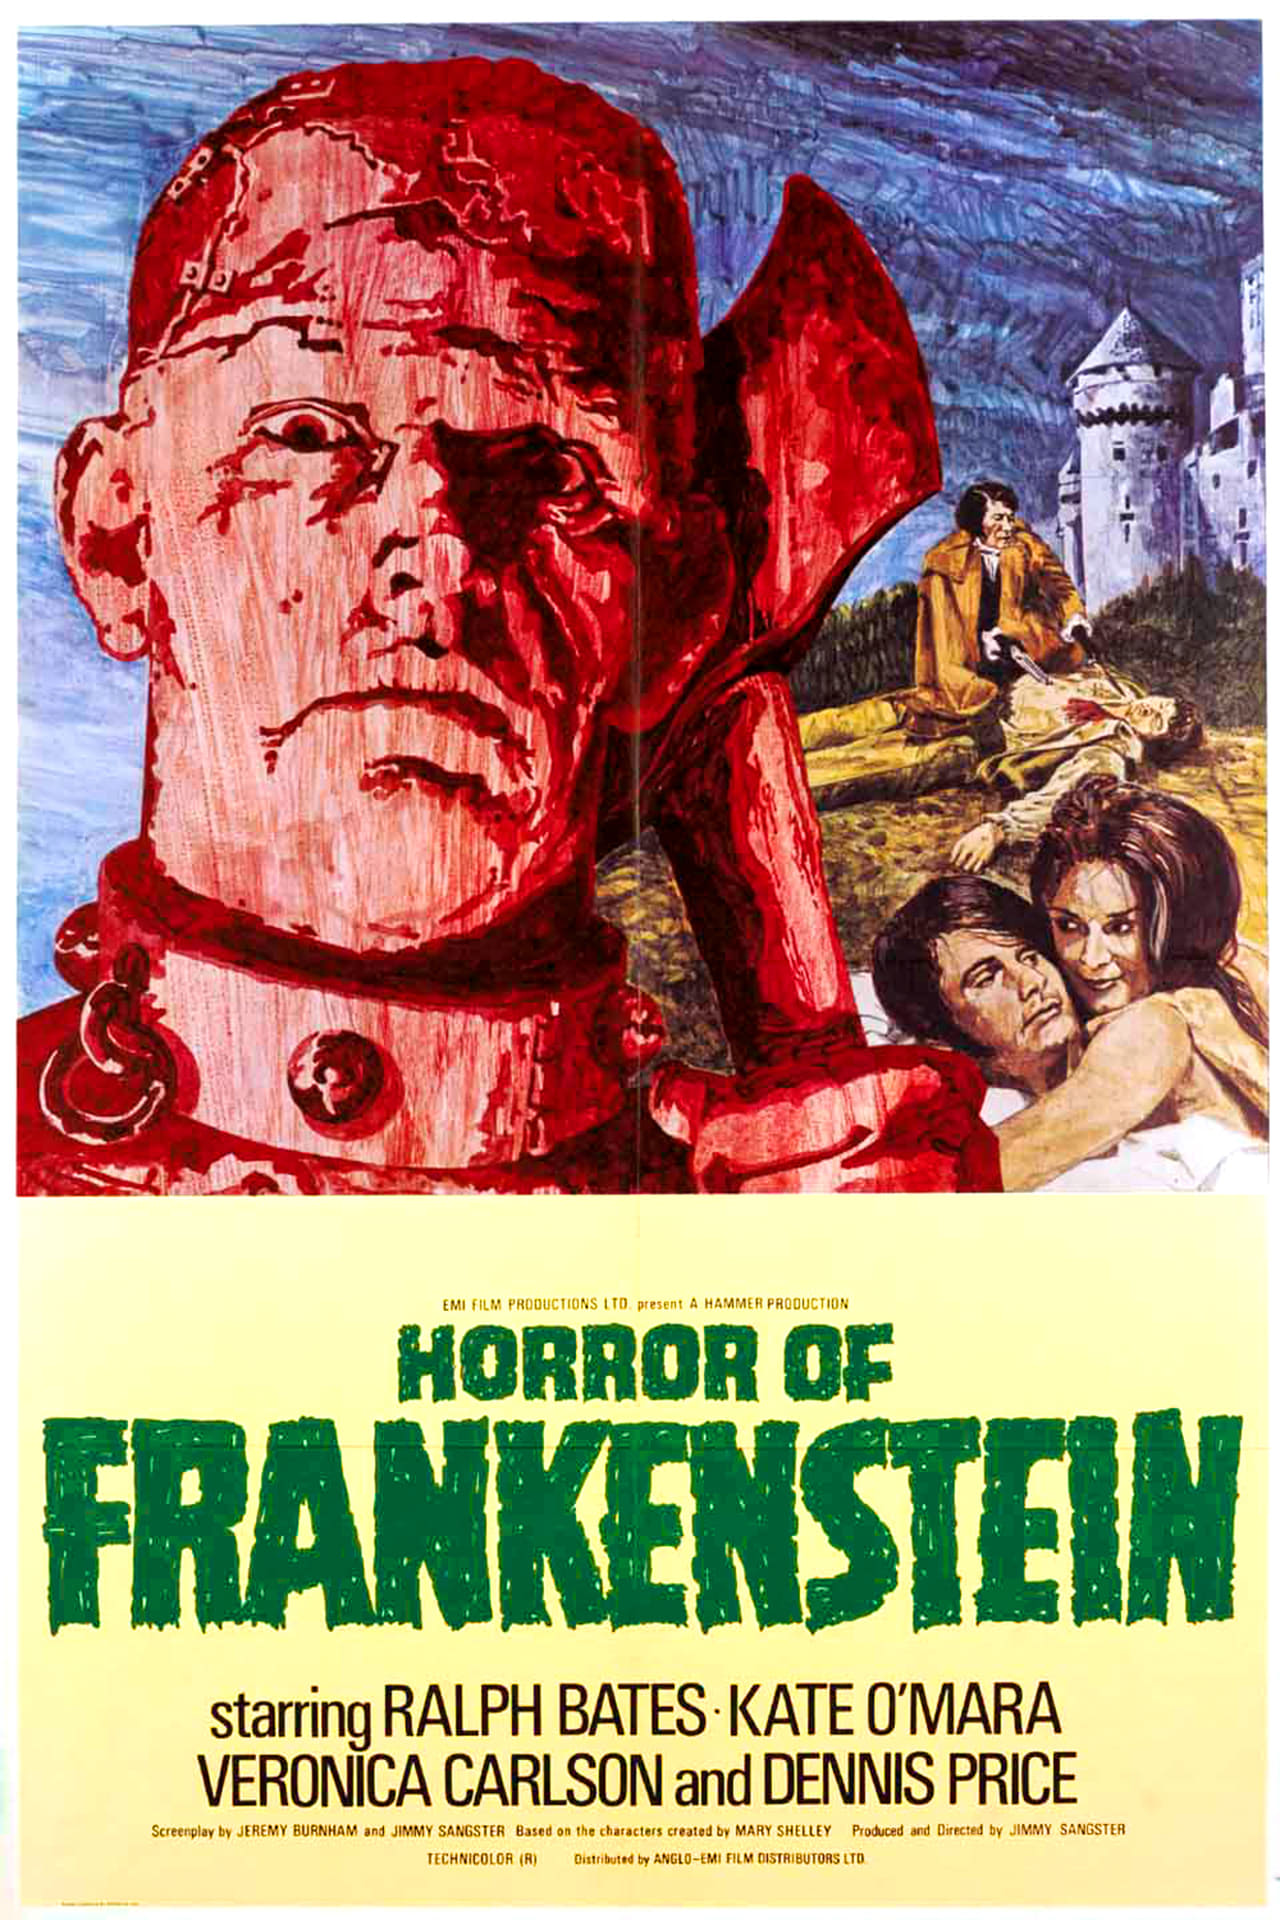 The Horror of Frankenstein